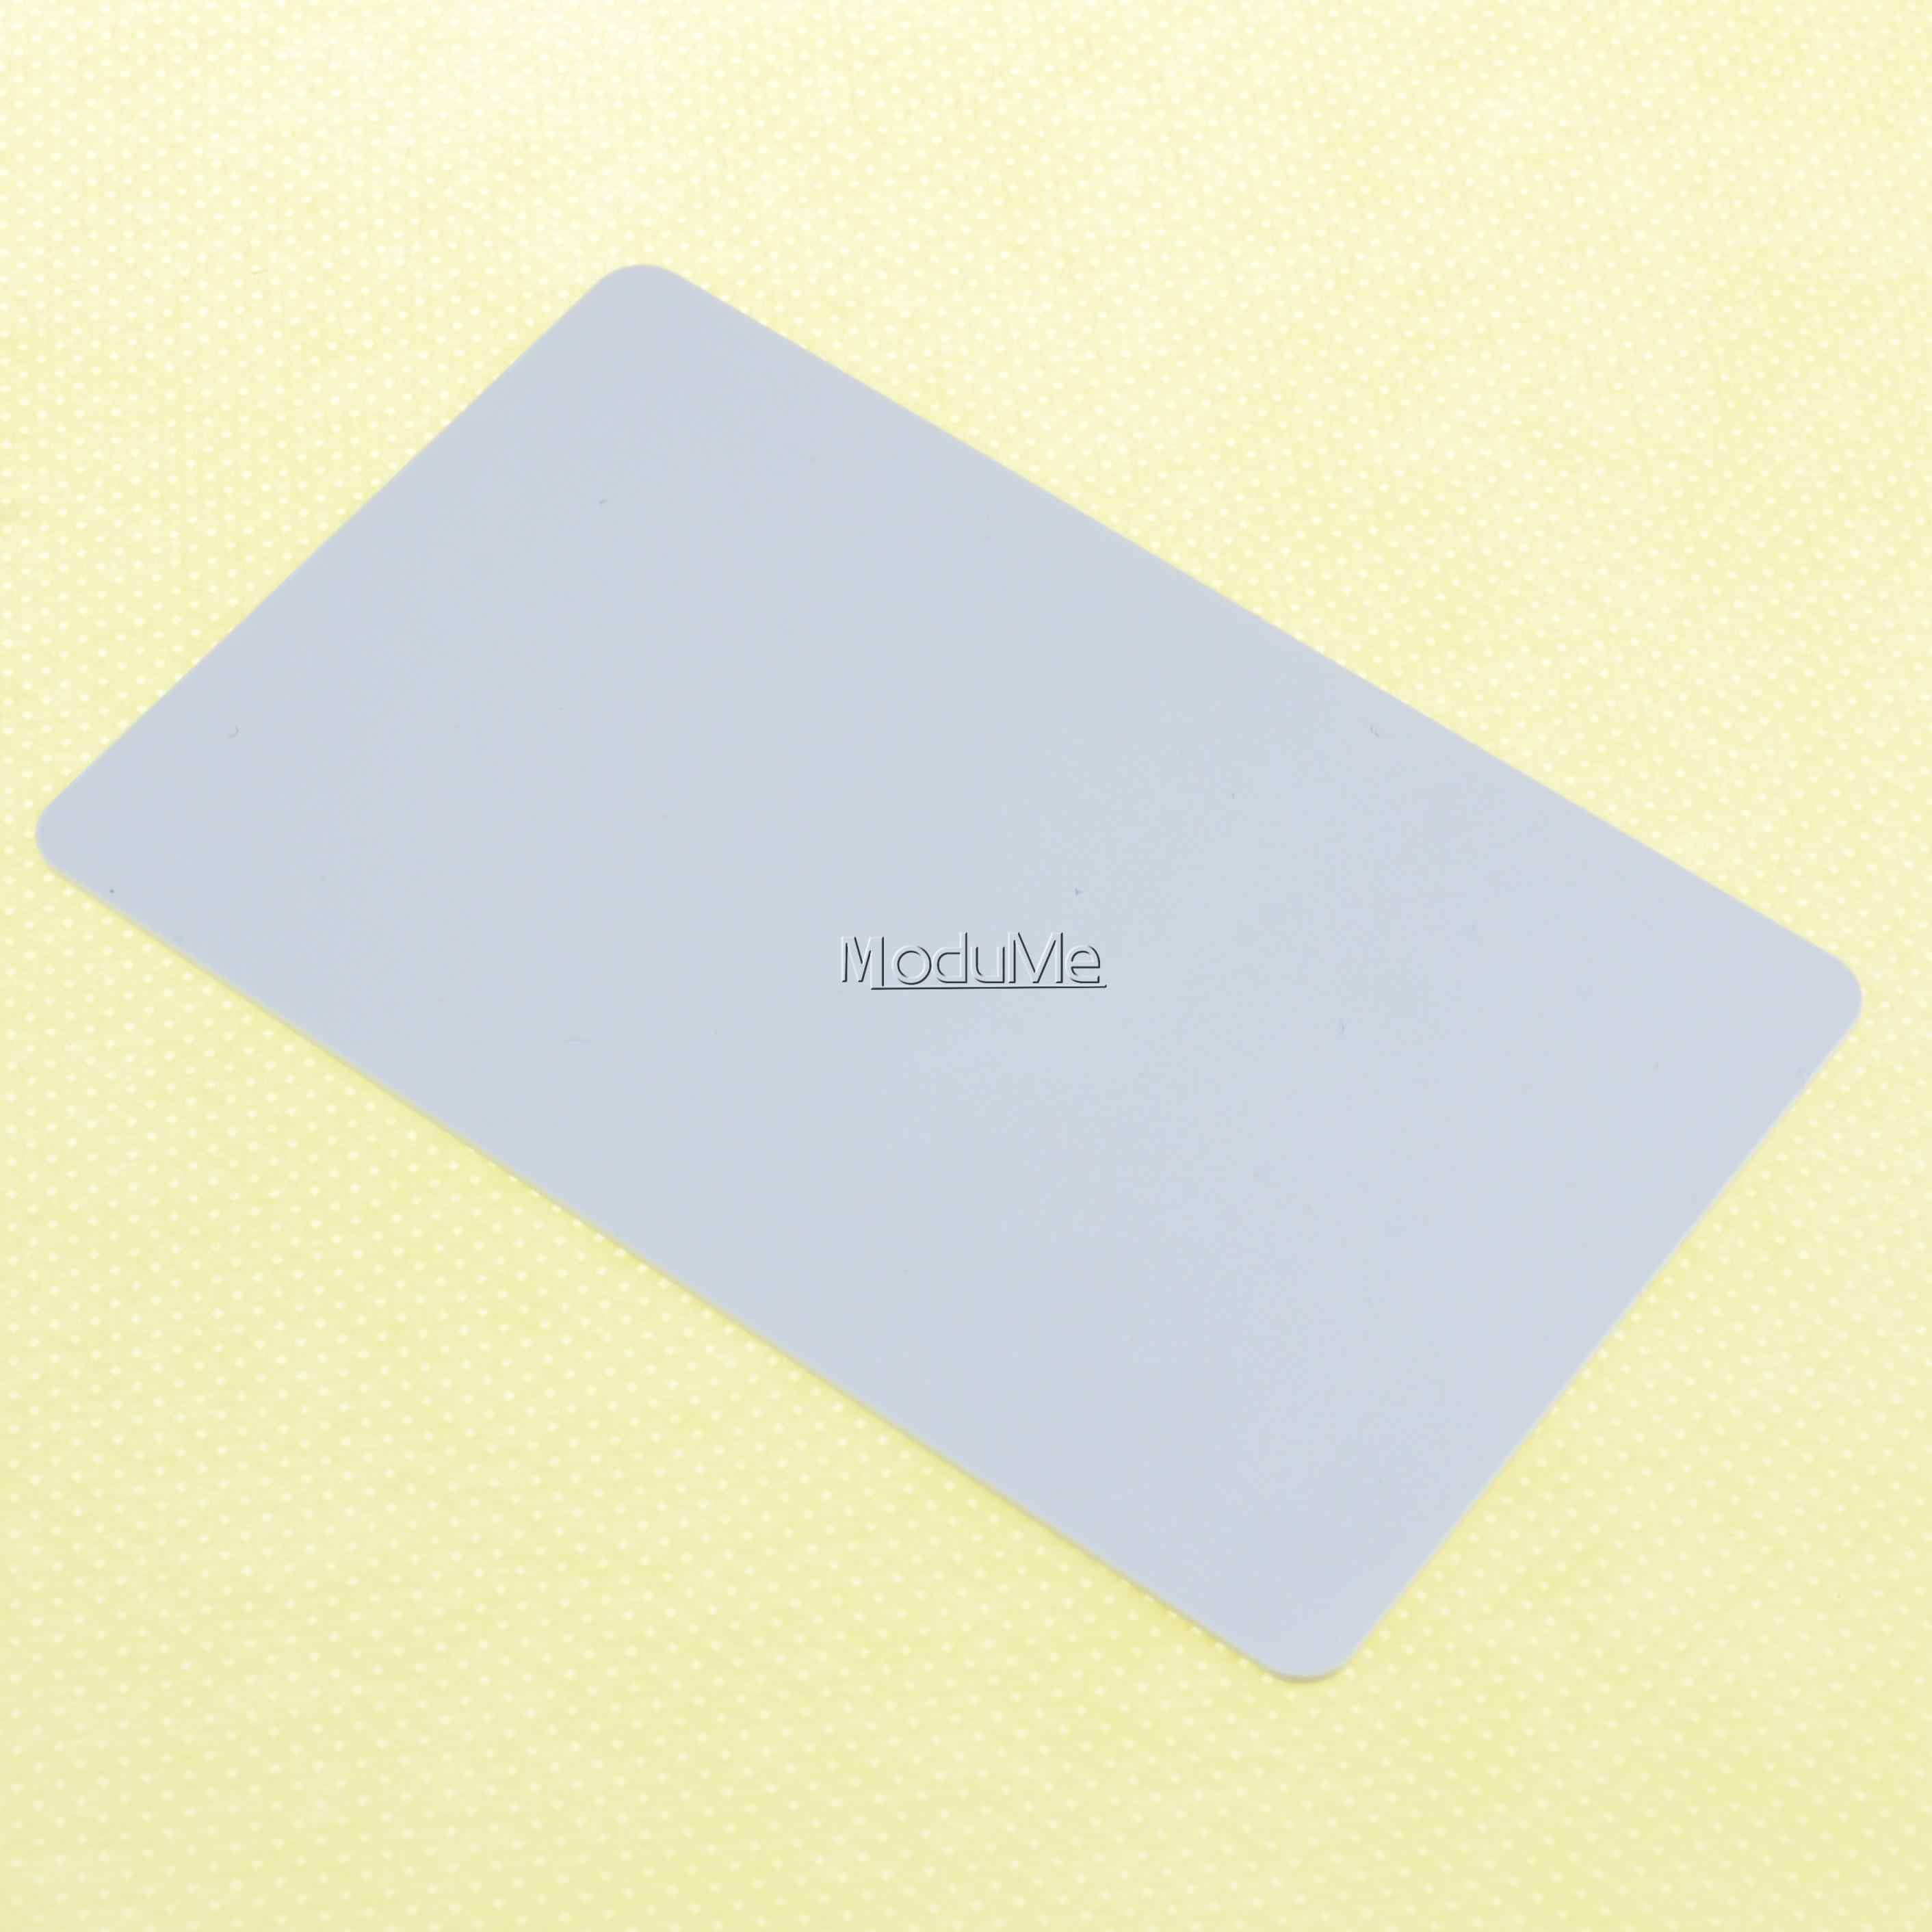 IC Card Verwisselbare NFC Smart Card Tags voor 1 K S50 RFID 13.56 MHz ISO14443A Kaart Voor Arduino